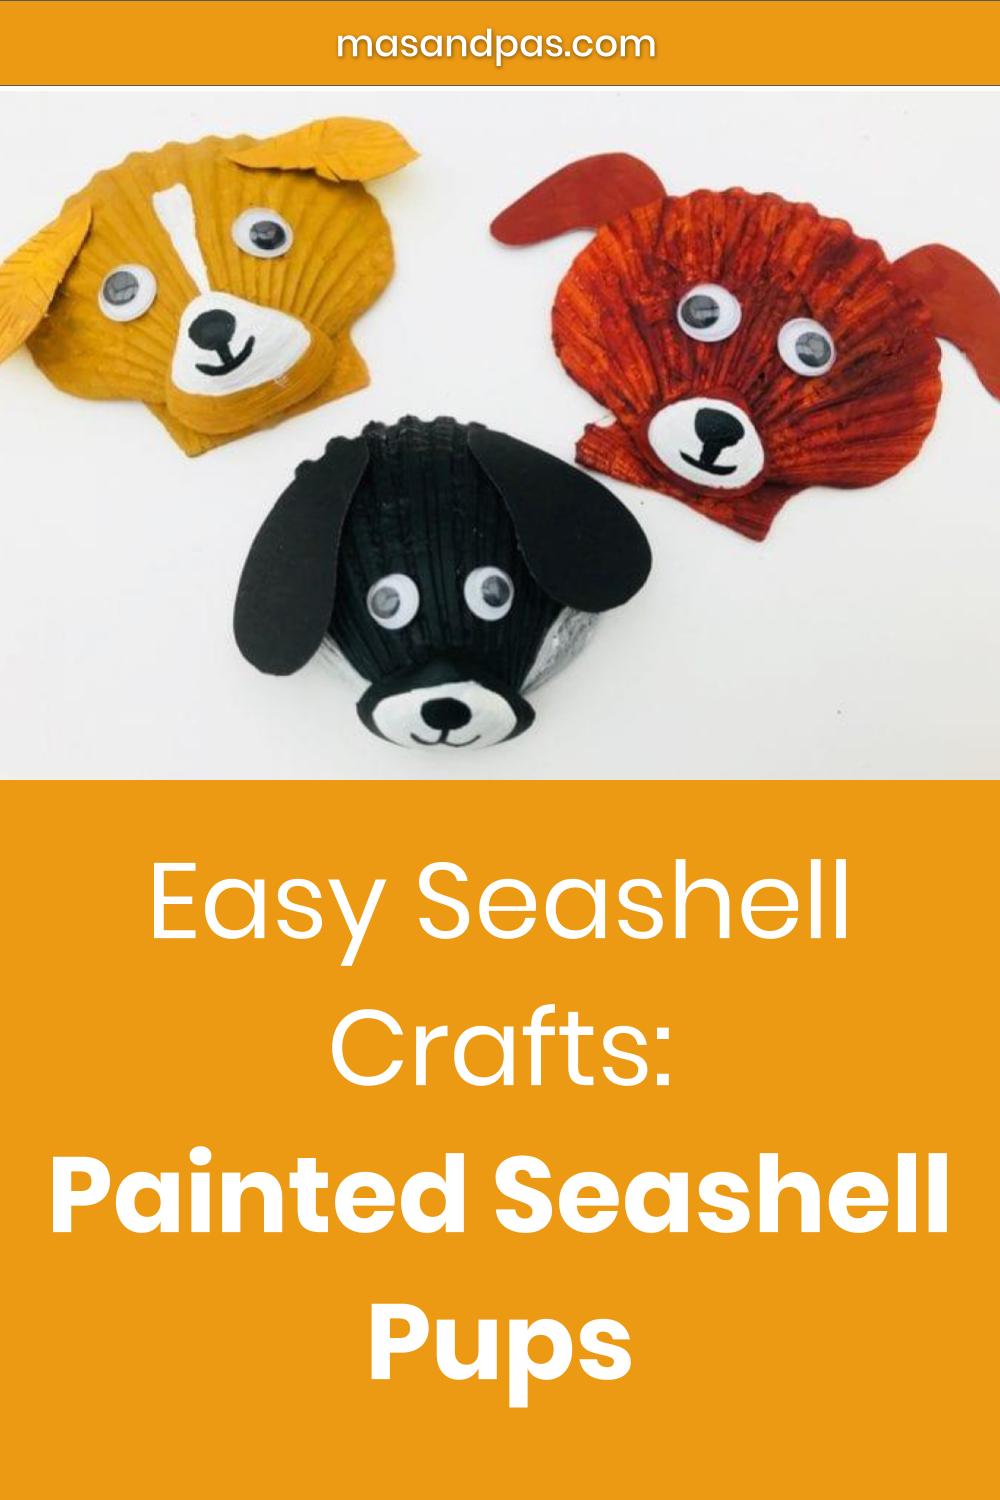 Easy Seashell Crafts Painted Seashell Pups With Images Summer Crafts For Kids Seashell Crafts Fun Crafts For Kids